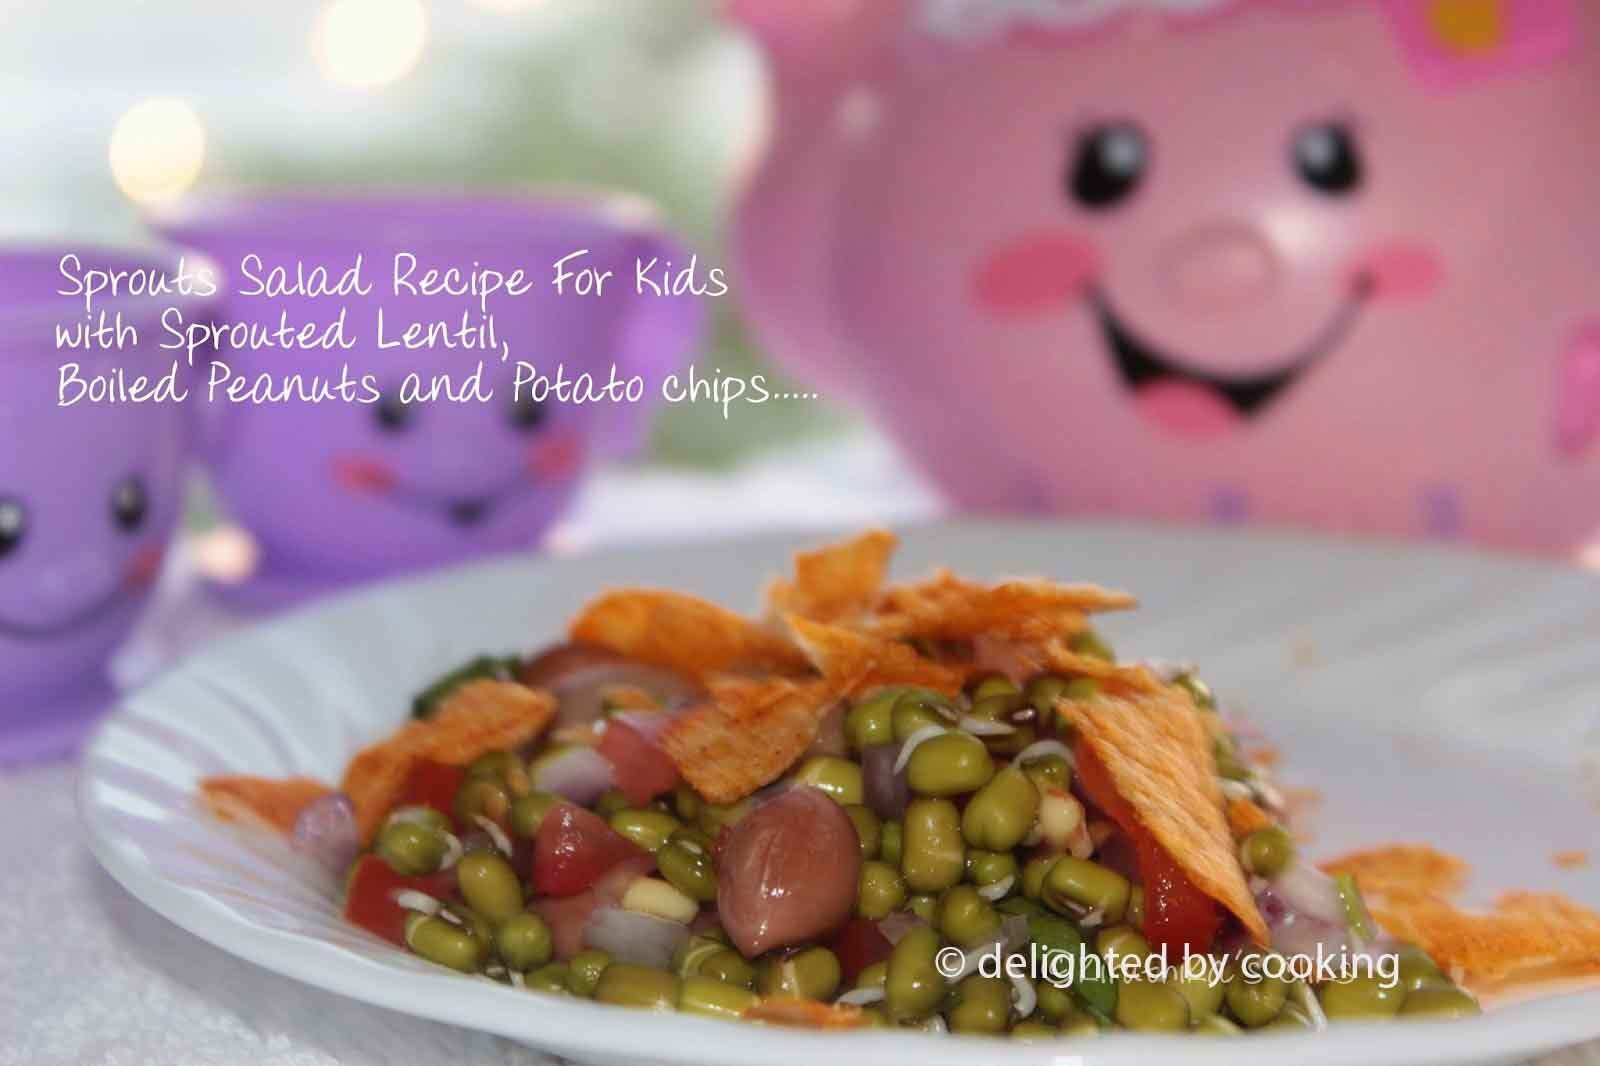 Sprouts Salad Recipe for Kids with Sprouted Lentil